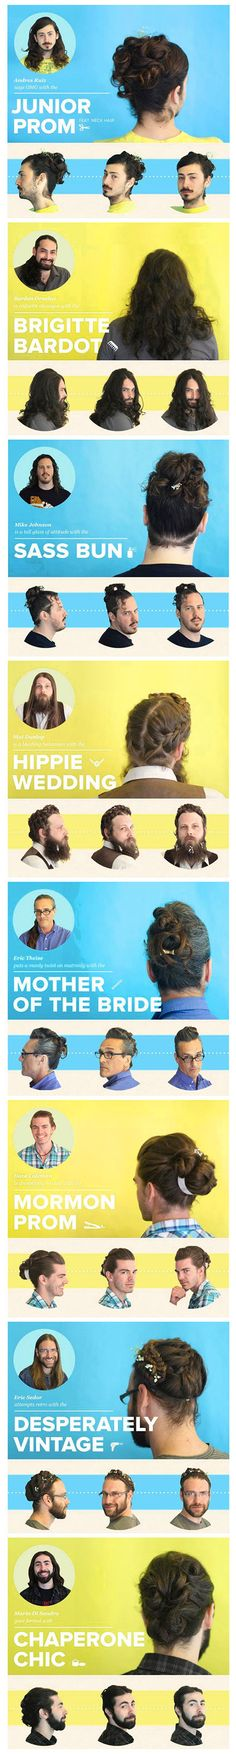 The Bold Italic took a bunch of dudes with long hair to a fancy salon and gave them fancy female updos. Look how dashing they are! Disturbingly hilarious